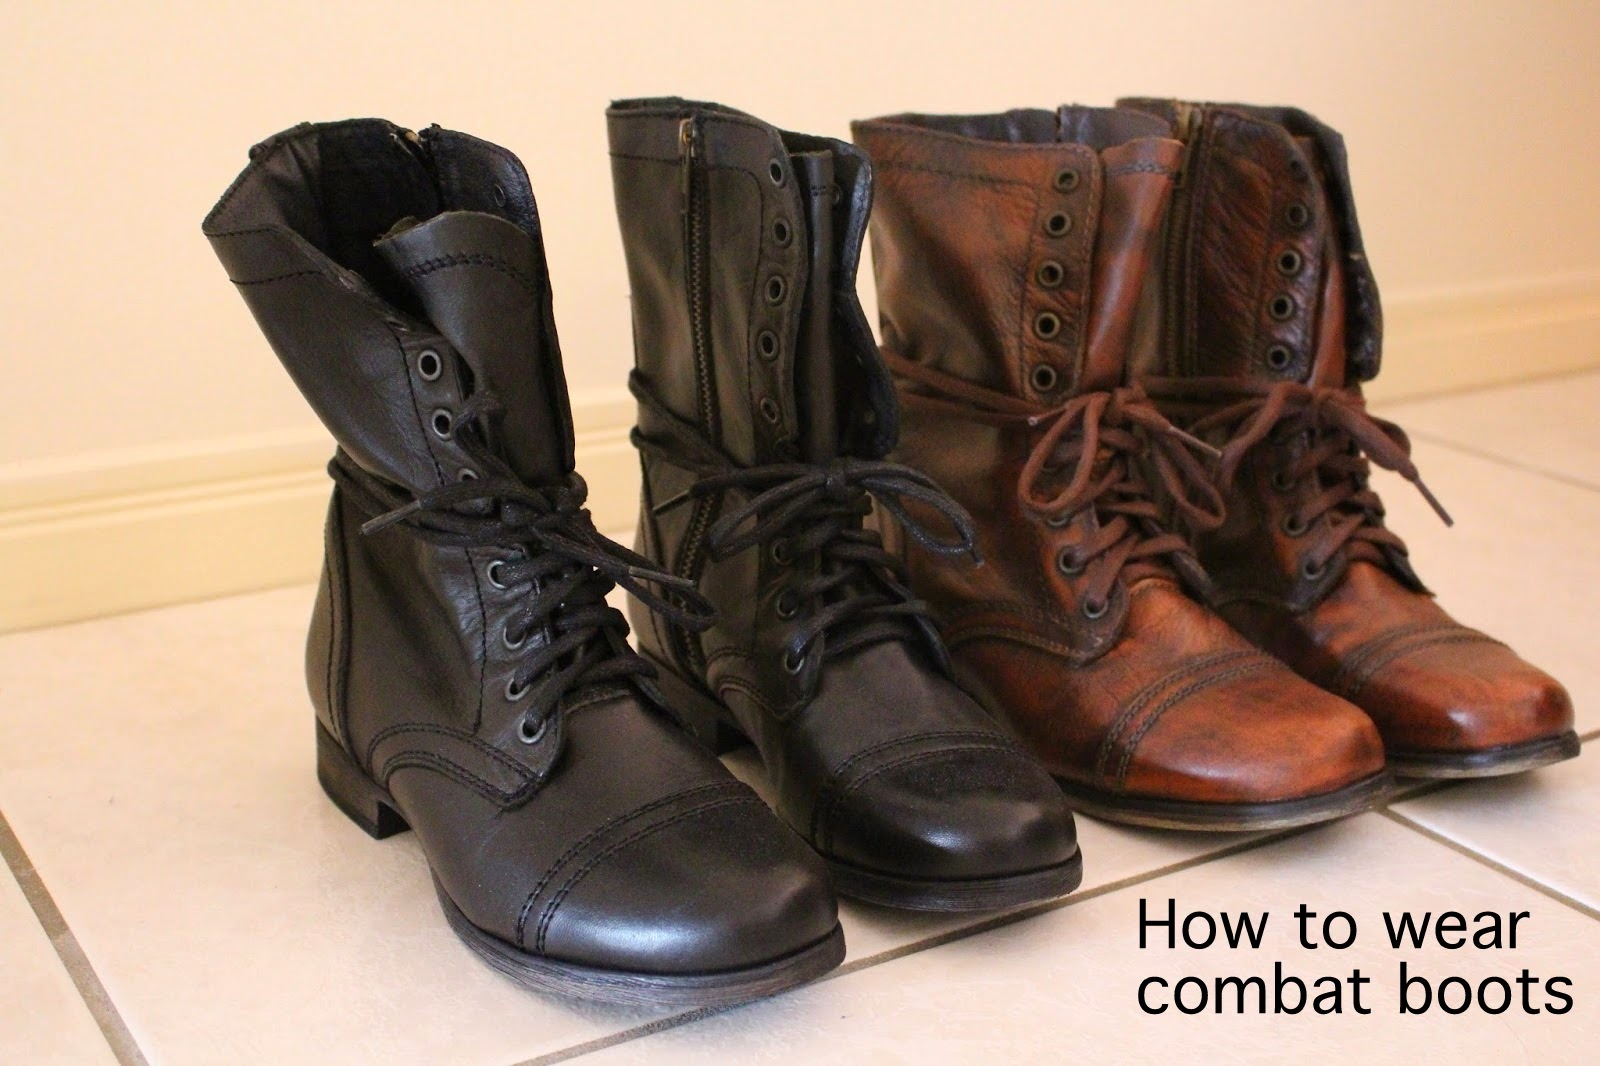 combat boots, brown combat boots, black combat boots, how to wear combat boots, combat boots and a dress, combat boots and denim shorts, petite girl combat boots, jeans and combat boots, combat boots and a leather jacket,